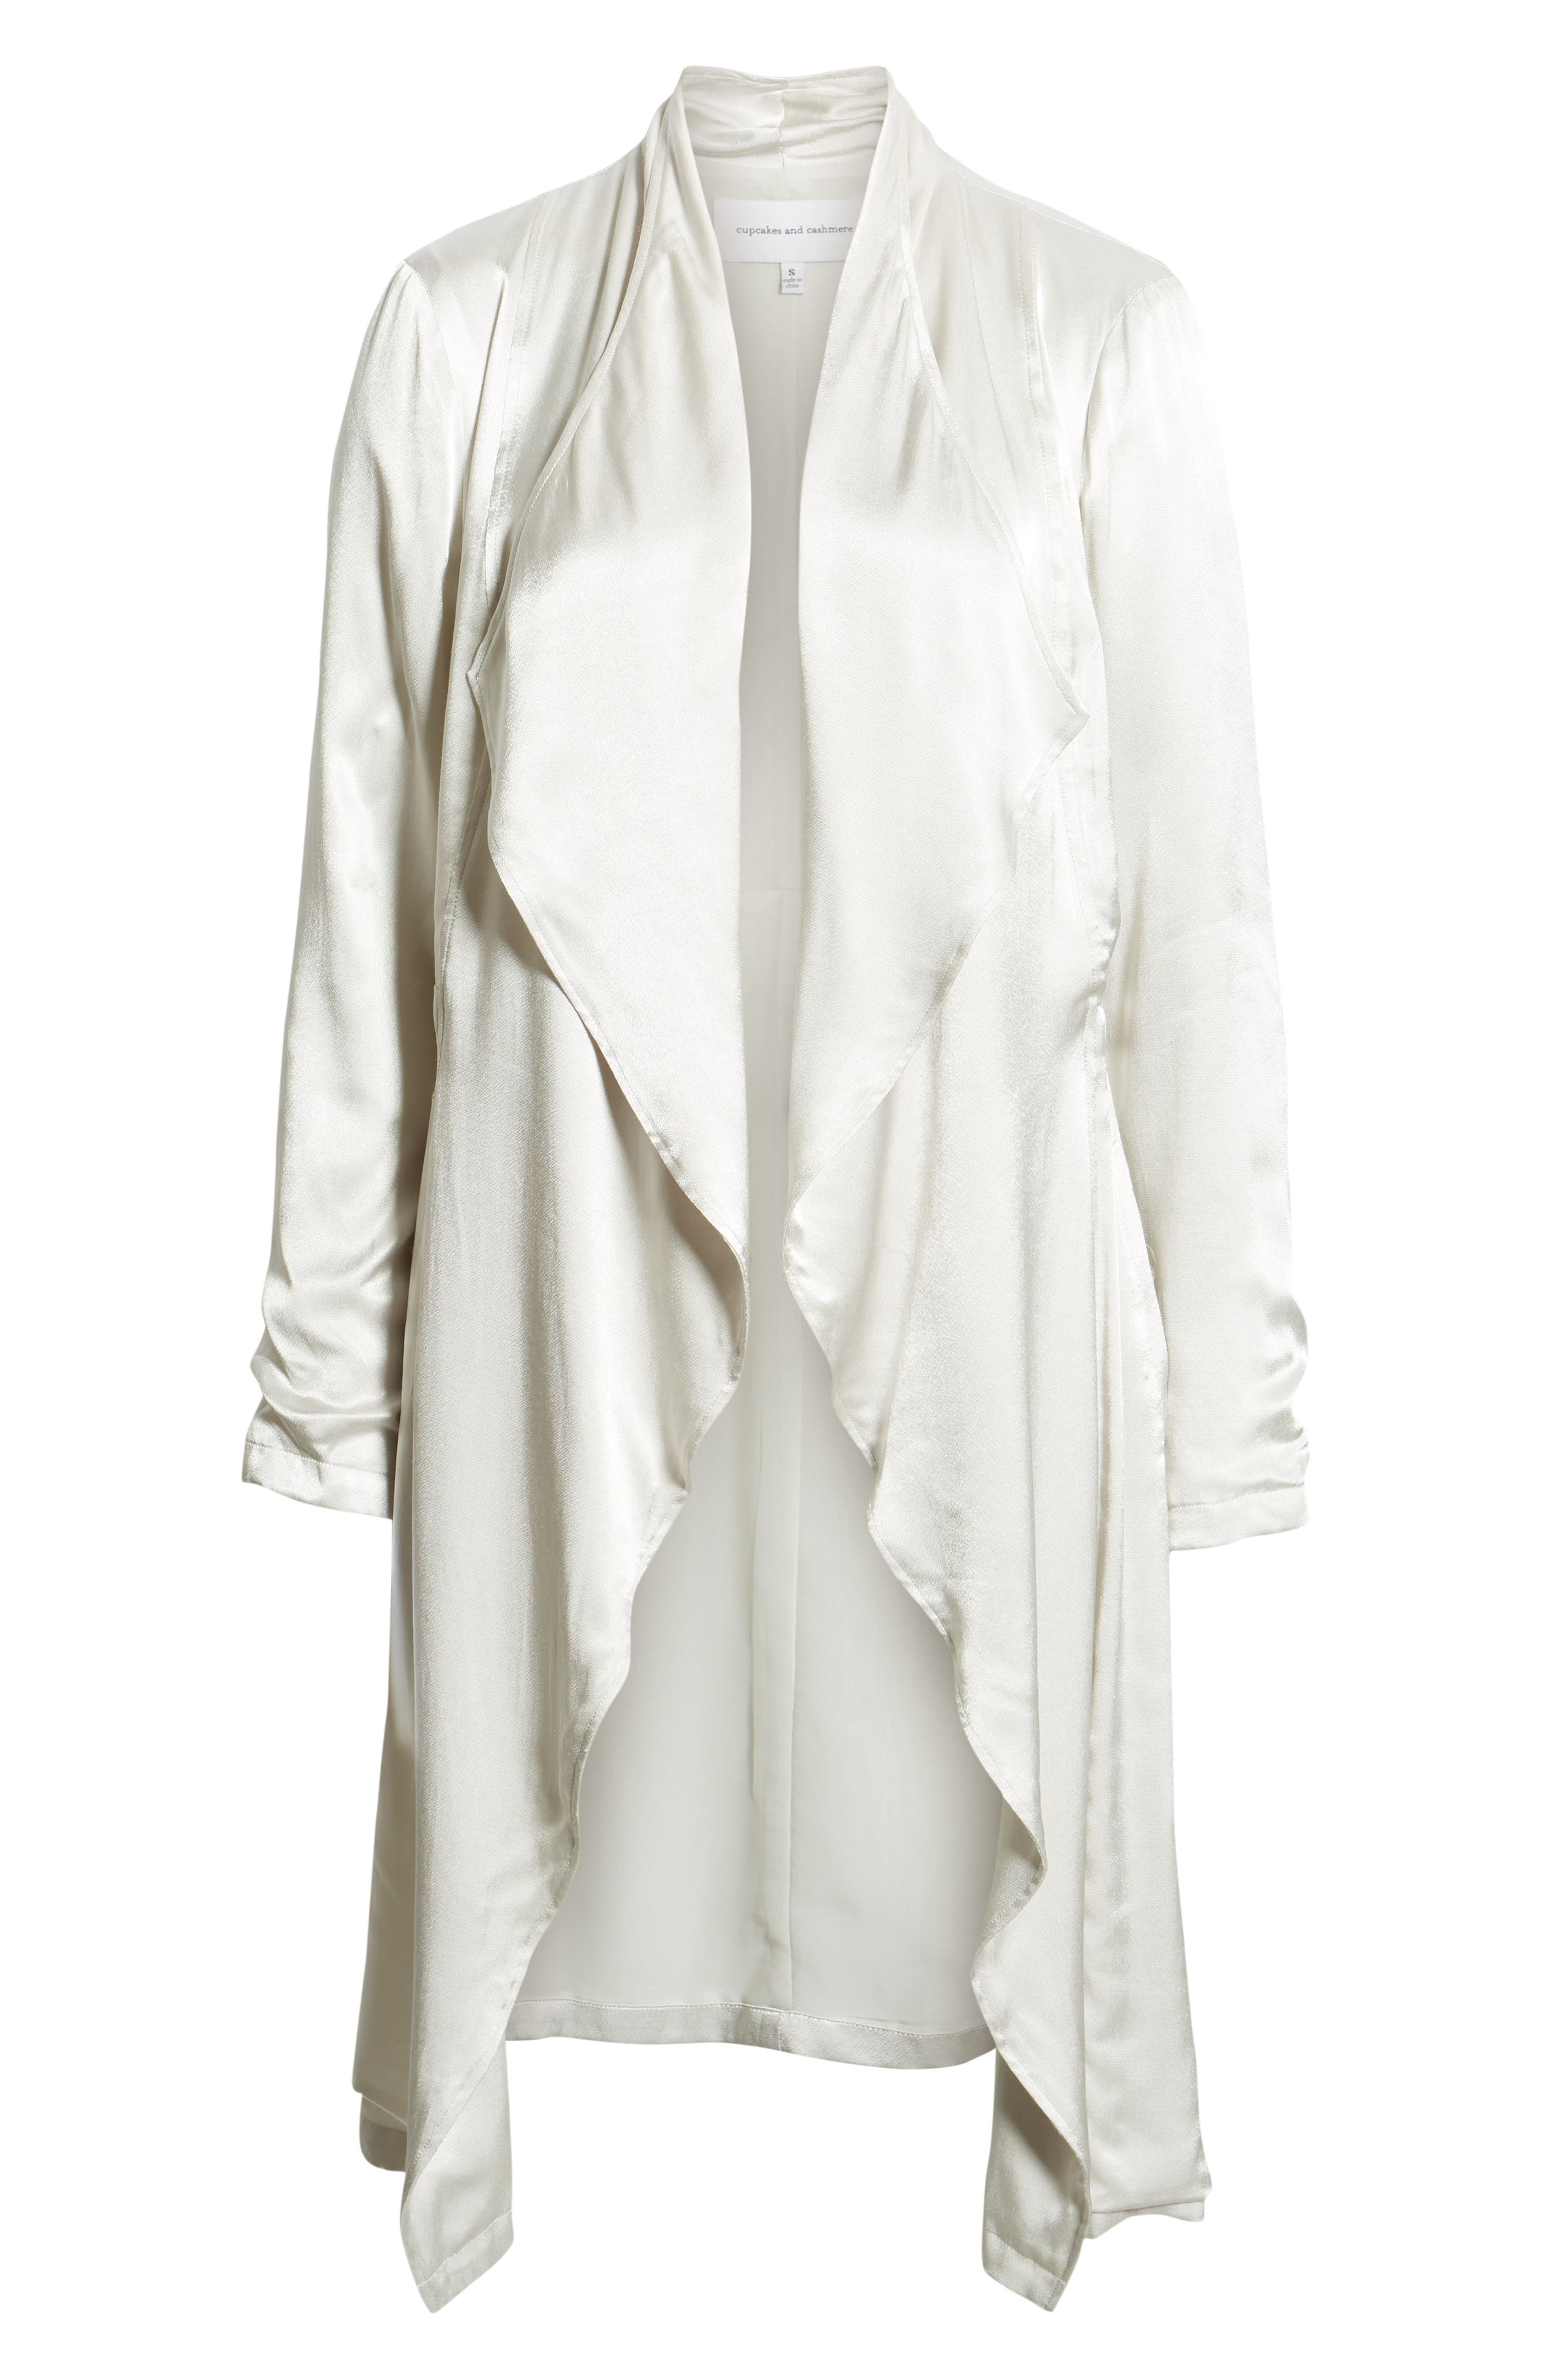 CUPCAKES AND CASHMERE, Drape Front Satin Trench Coat, Alternate thumbnail 6, color, 900